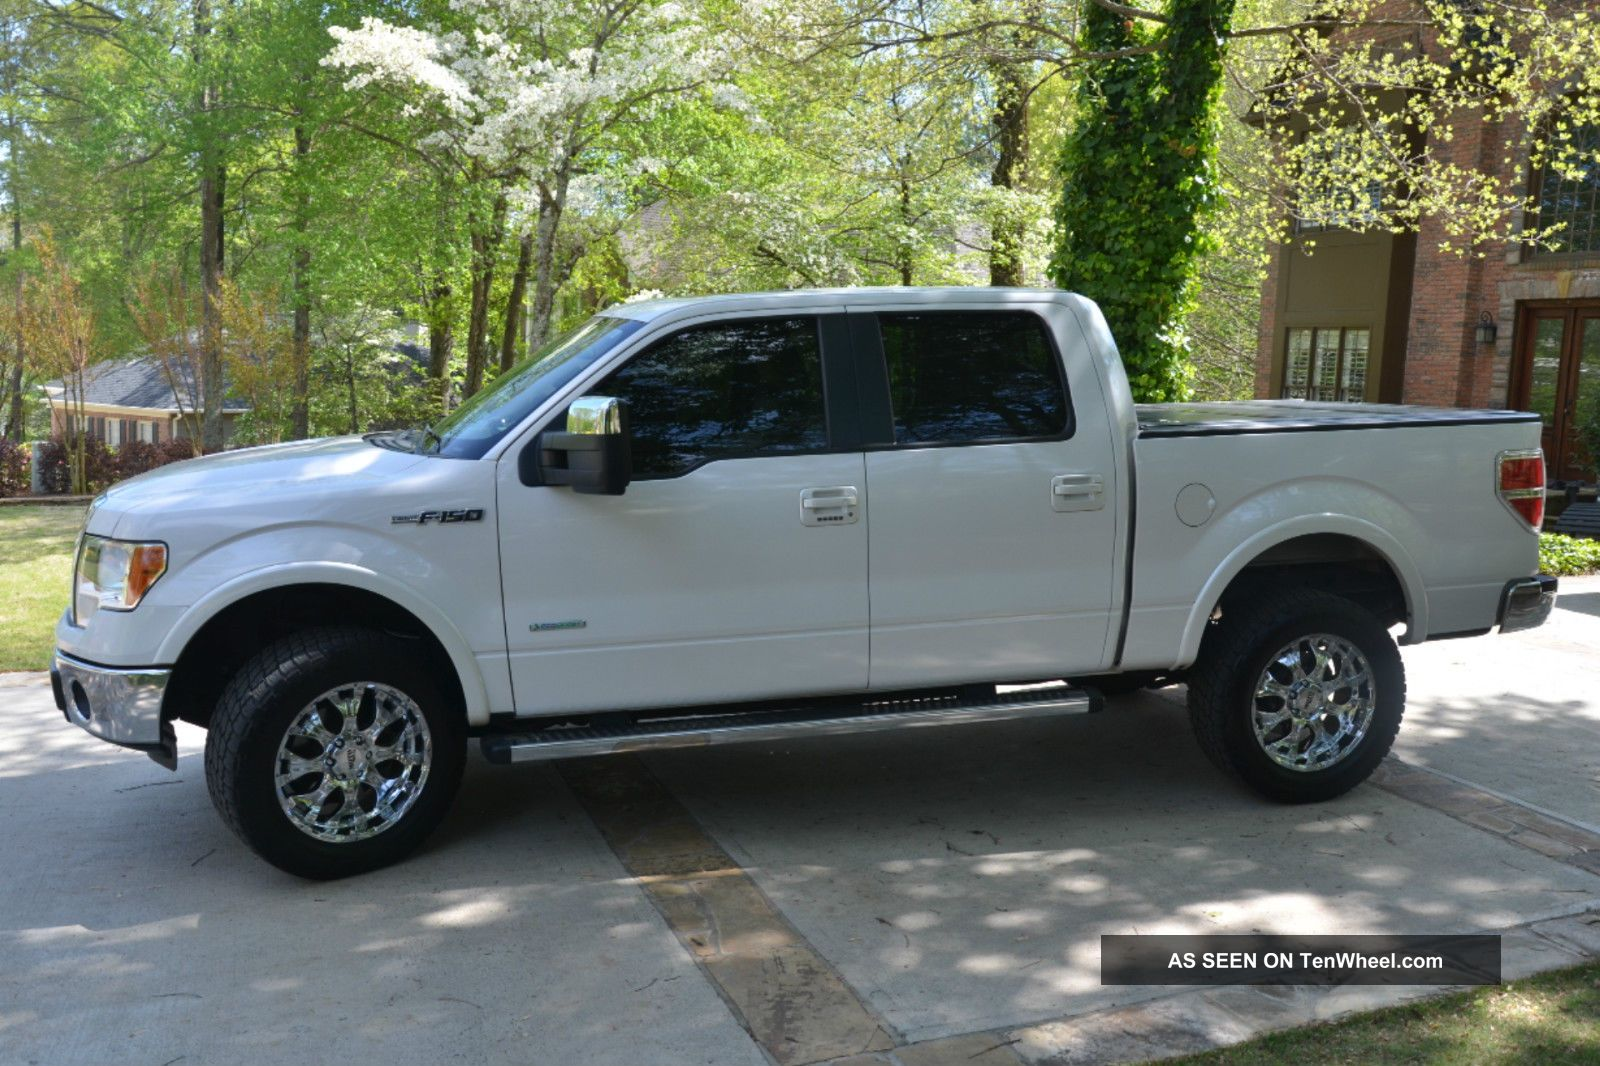 2011 ford f 150 lariat crew pickup 4 door 3 5l ecoboost max trailer tow. Black Bedroom Furniture Sets. Home Design Ideas